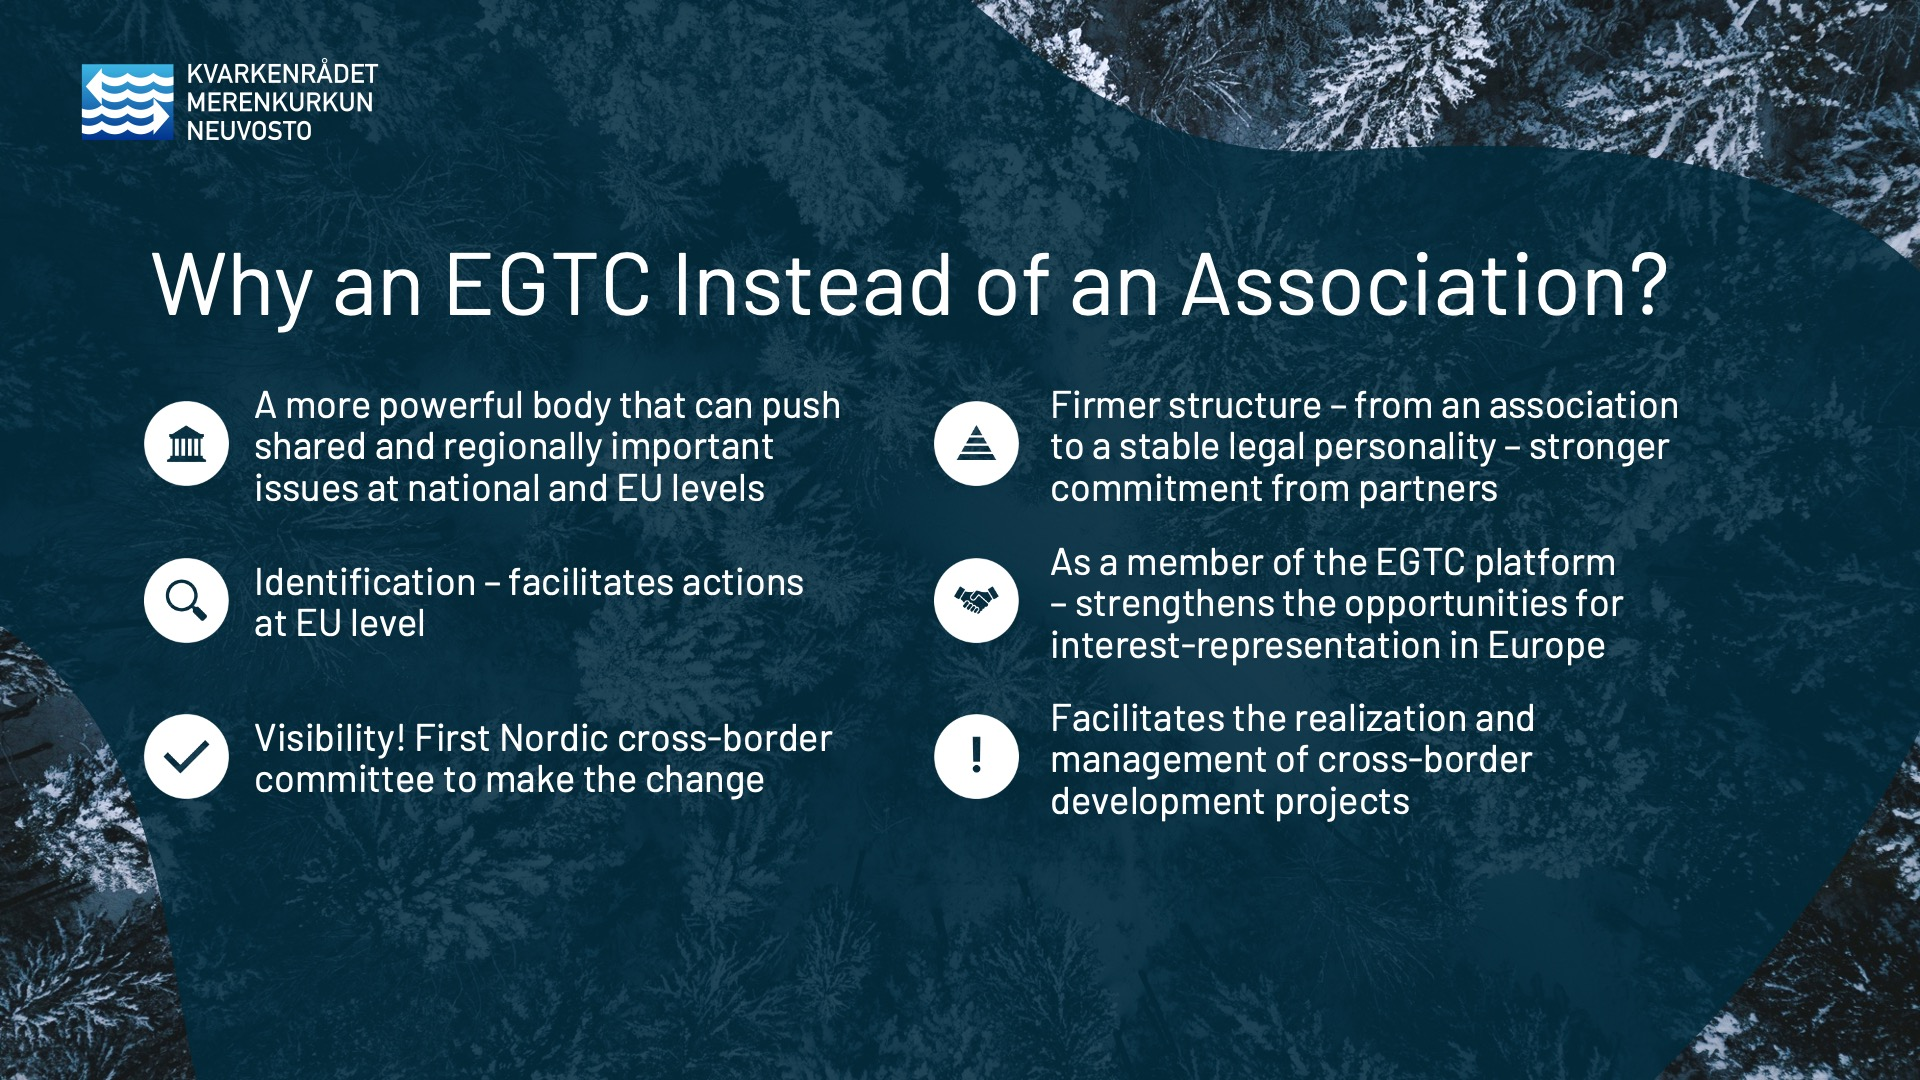 Why an EGTC Instead of an Association? The Kvarken Council